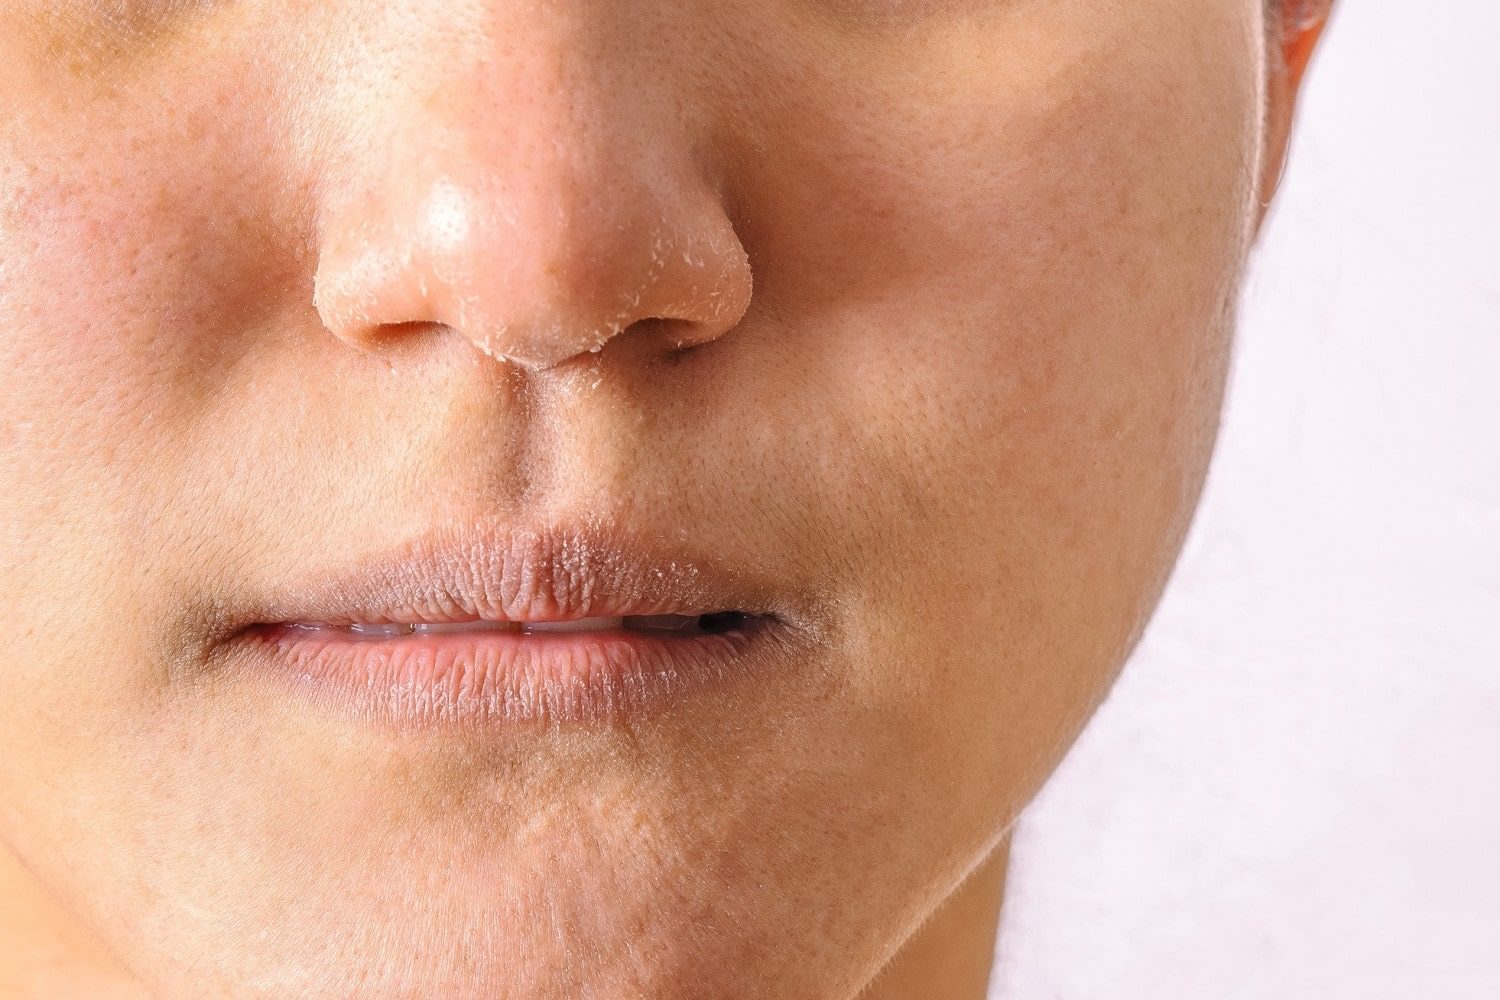 close up of a person with dry, flaky skin on their lips and nose.